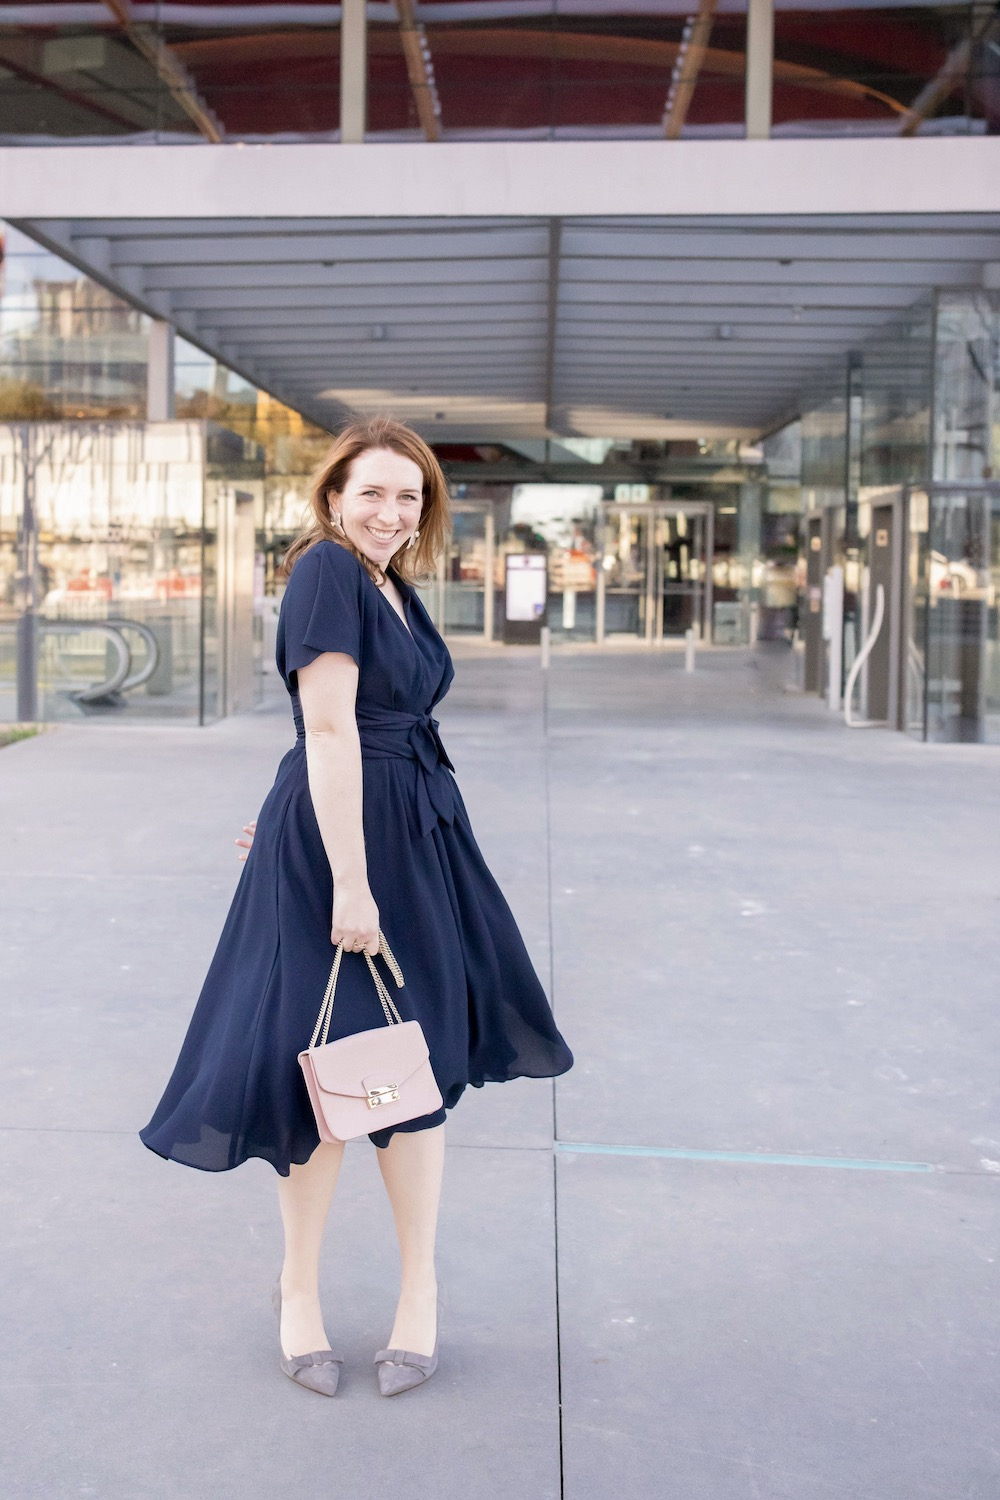 Gal Meets Glam Collection Dress | Navy Cocktail Dress | What to Wear to the Opera | What to Wear to a Wedding | Knee-Length Dress | Midi Dress | Feminine Dress